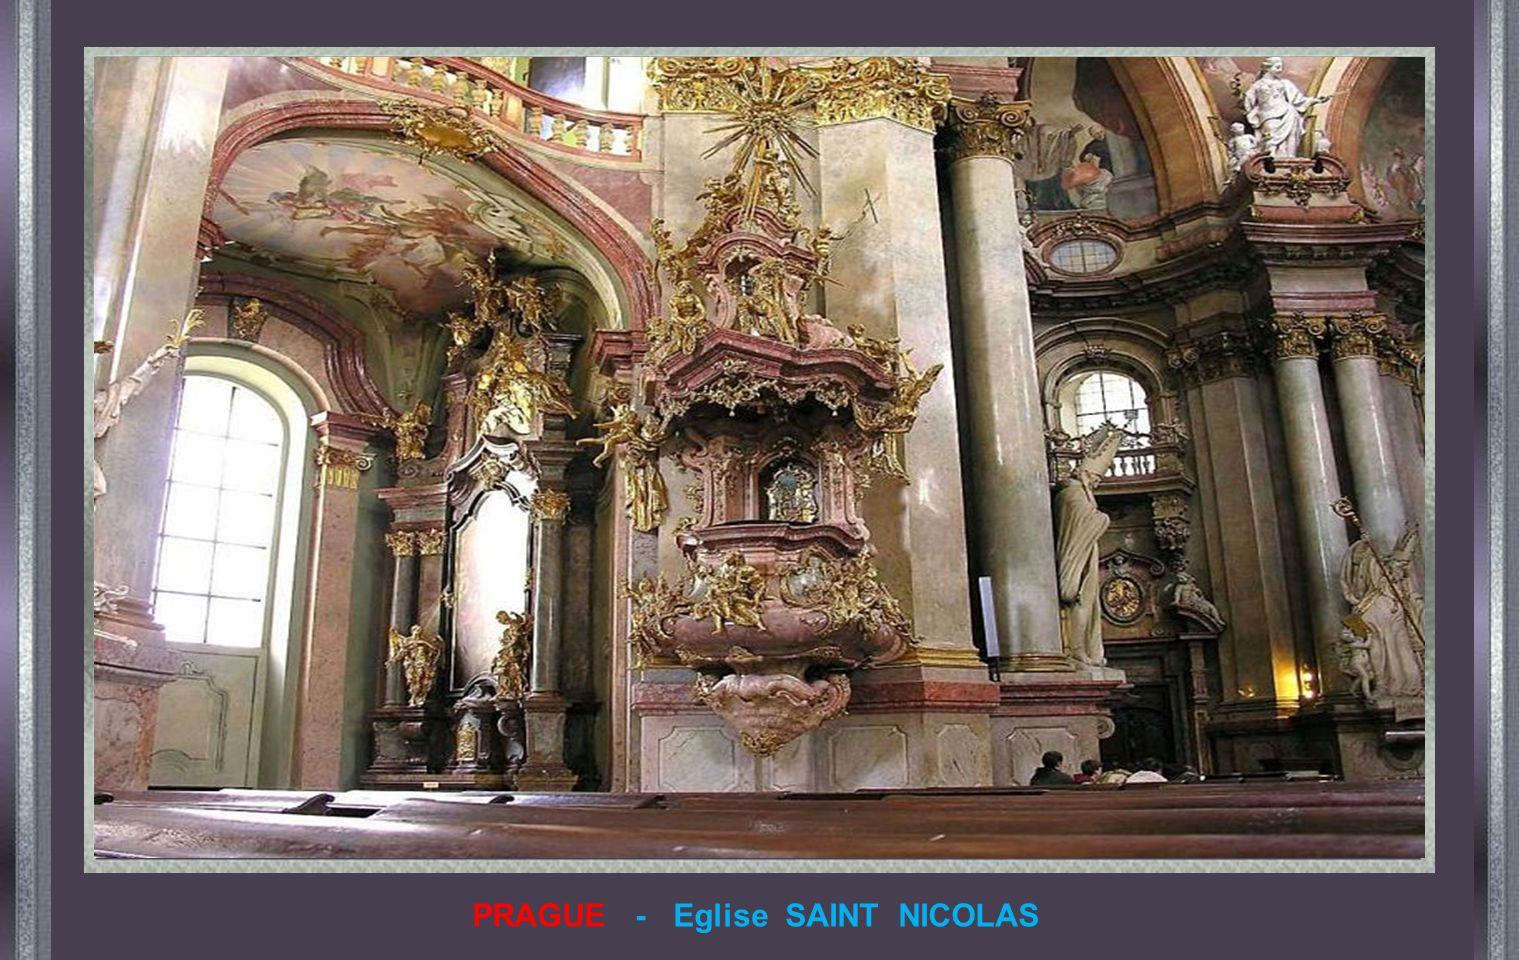 PRAGUE - Eglise SAINT NICOLAS